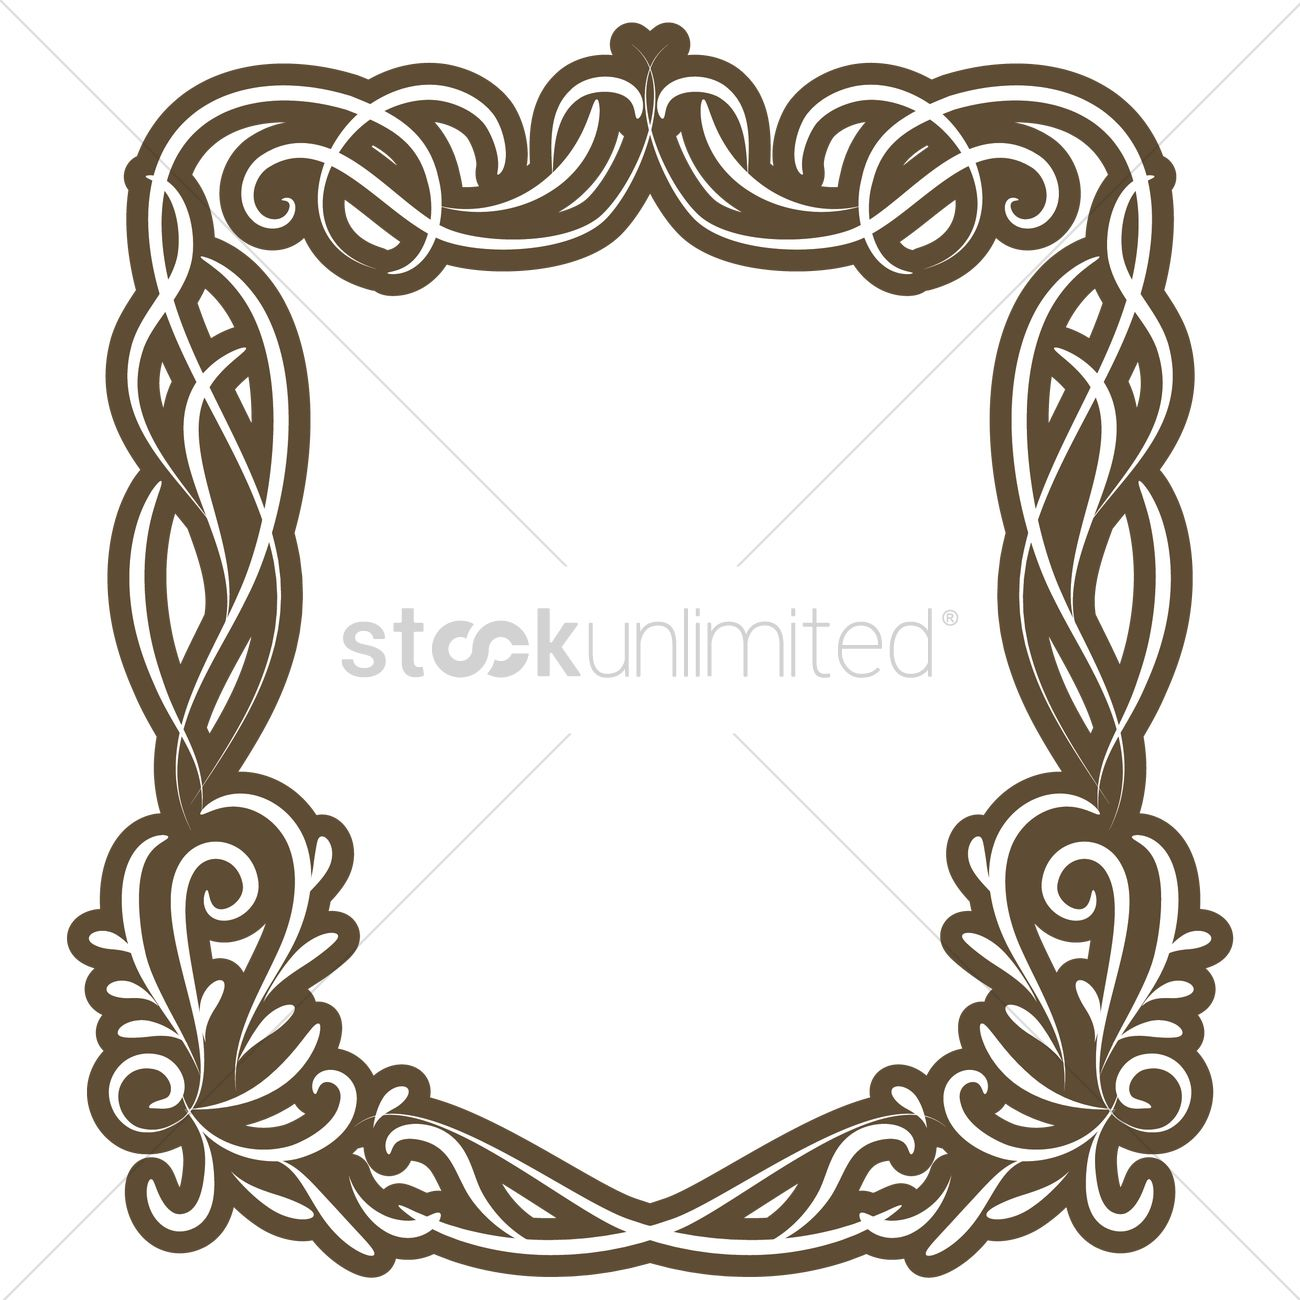 vintage border vector image 1871971 stockunlimited rh stockunlimited com vintage border vector gold vintage border vector free download